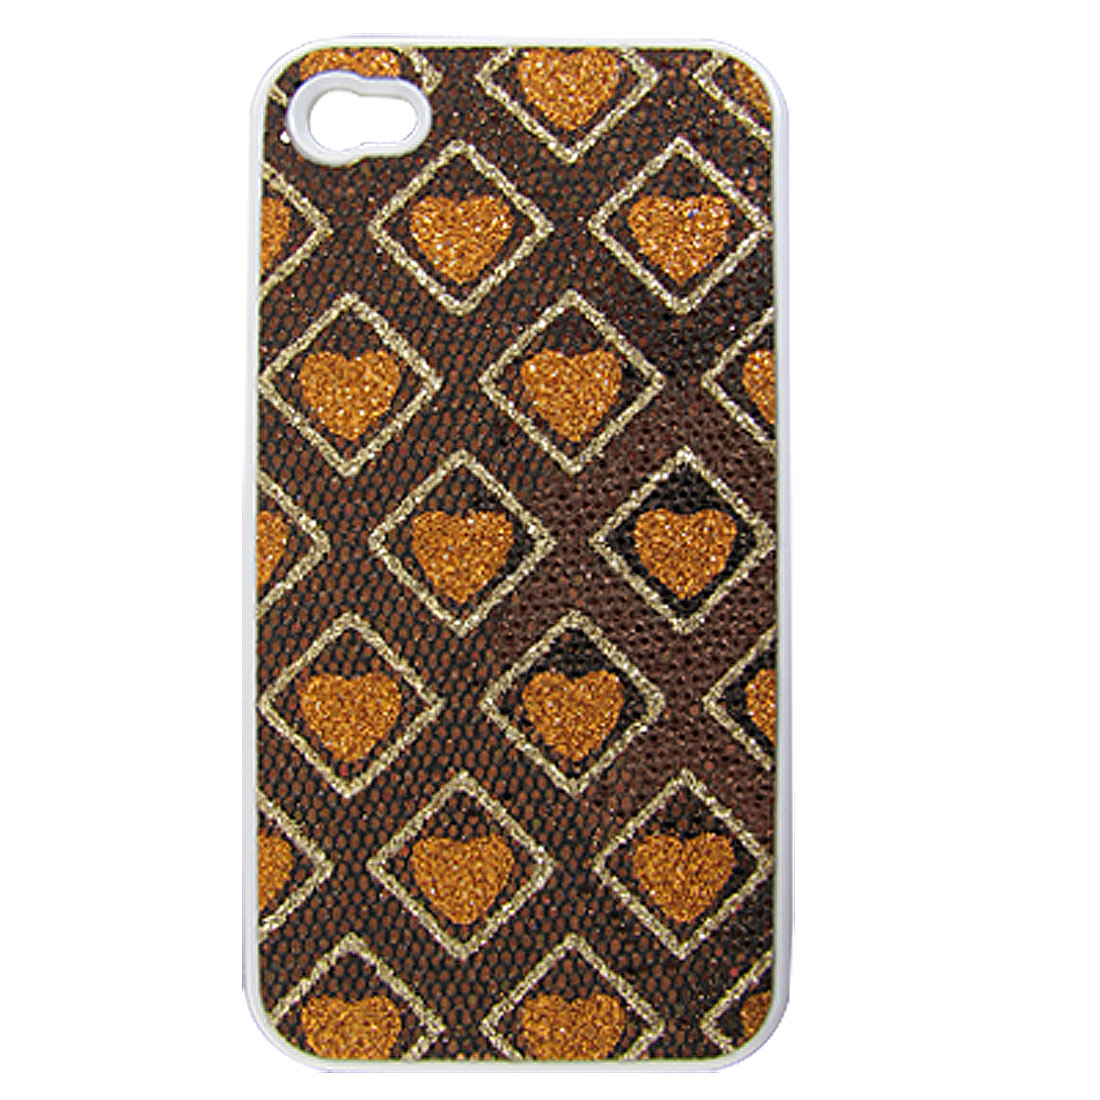 Brown Orange Glittery Heart Square Hard Back Case Cover for iPhone 4 4S 4G 4GS